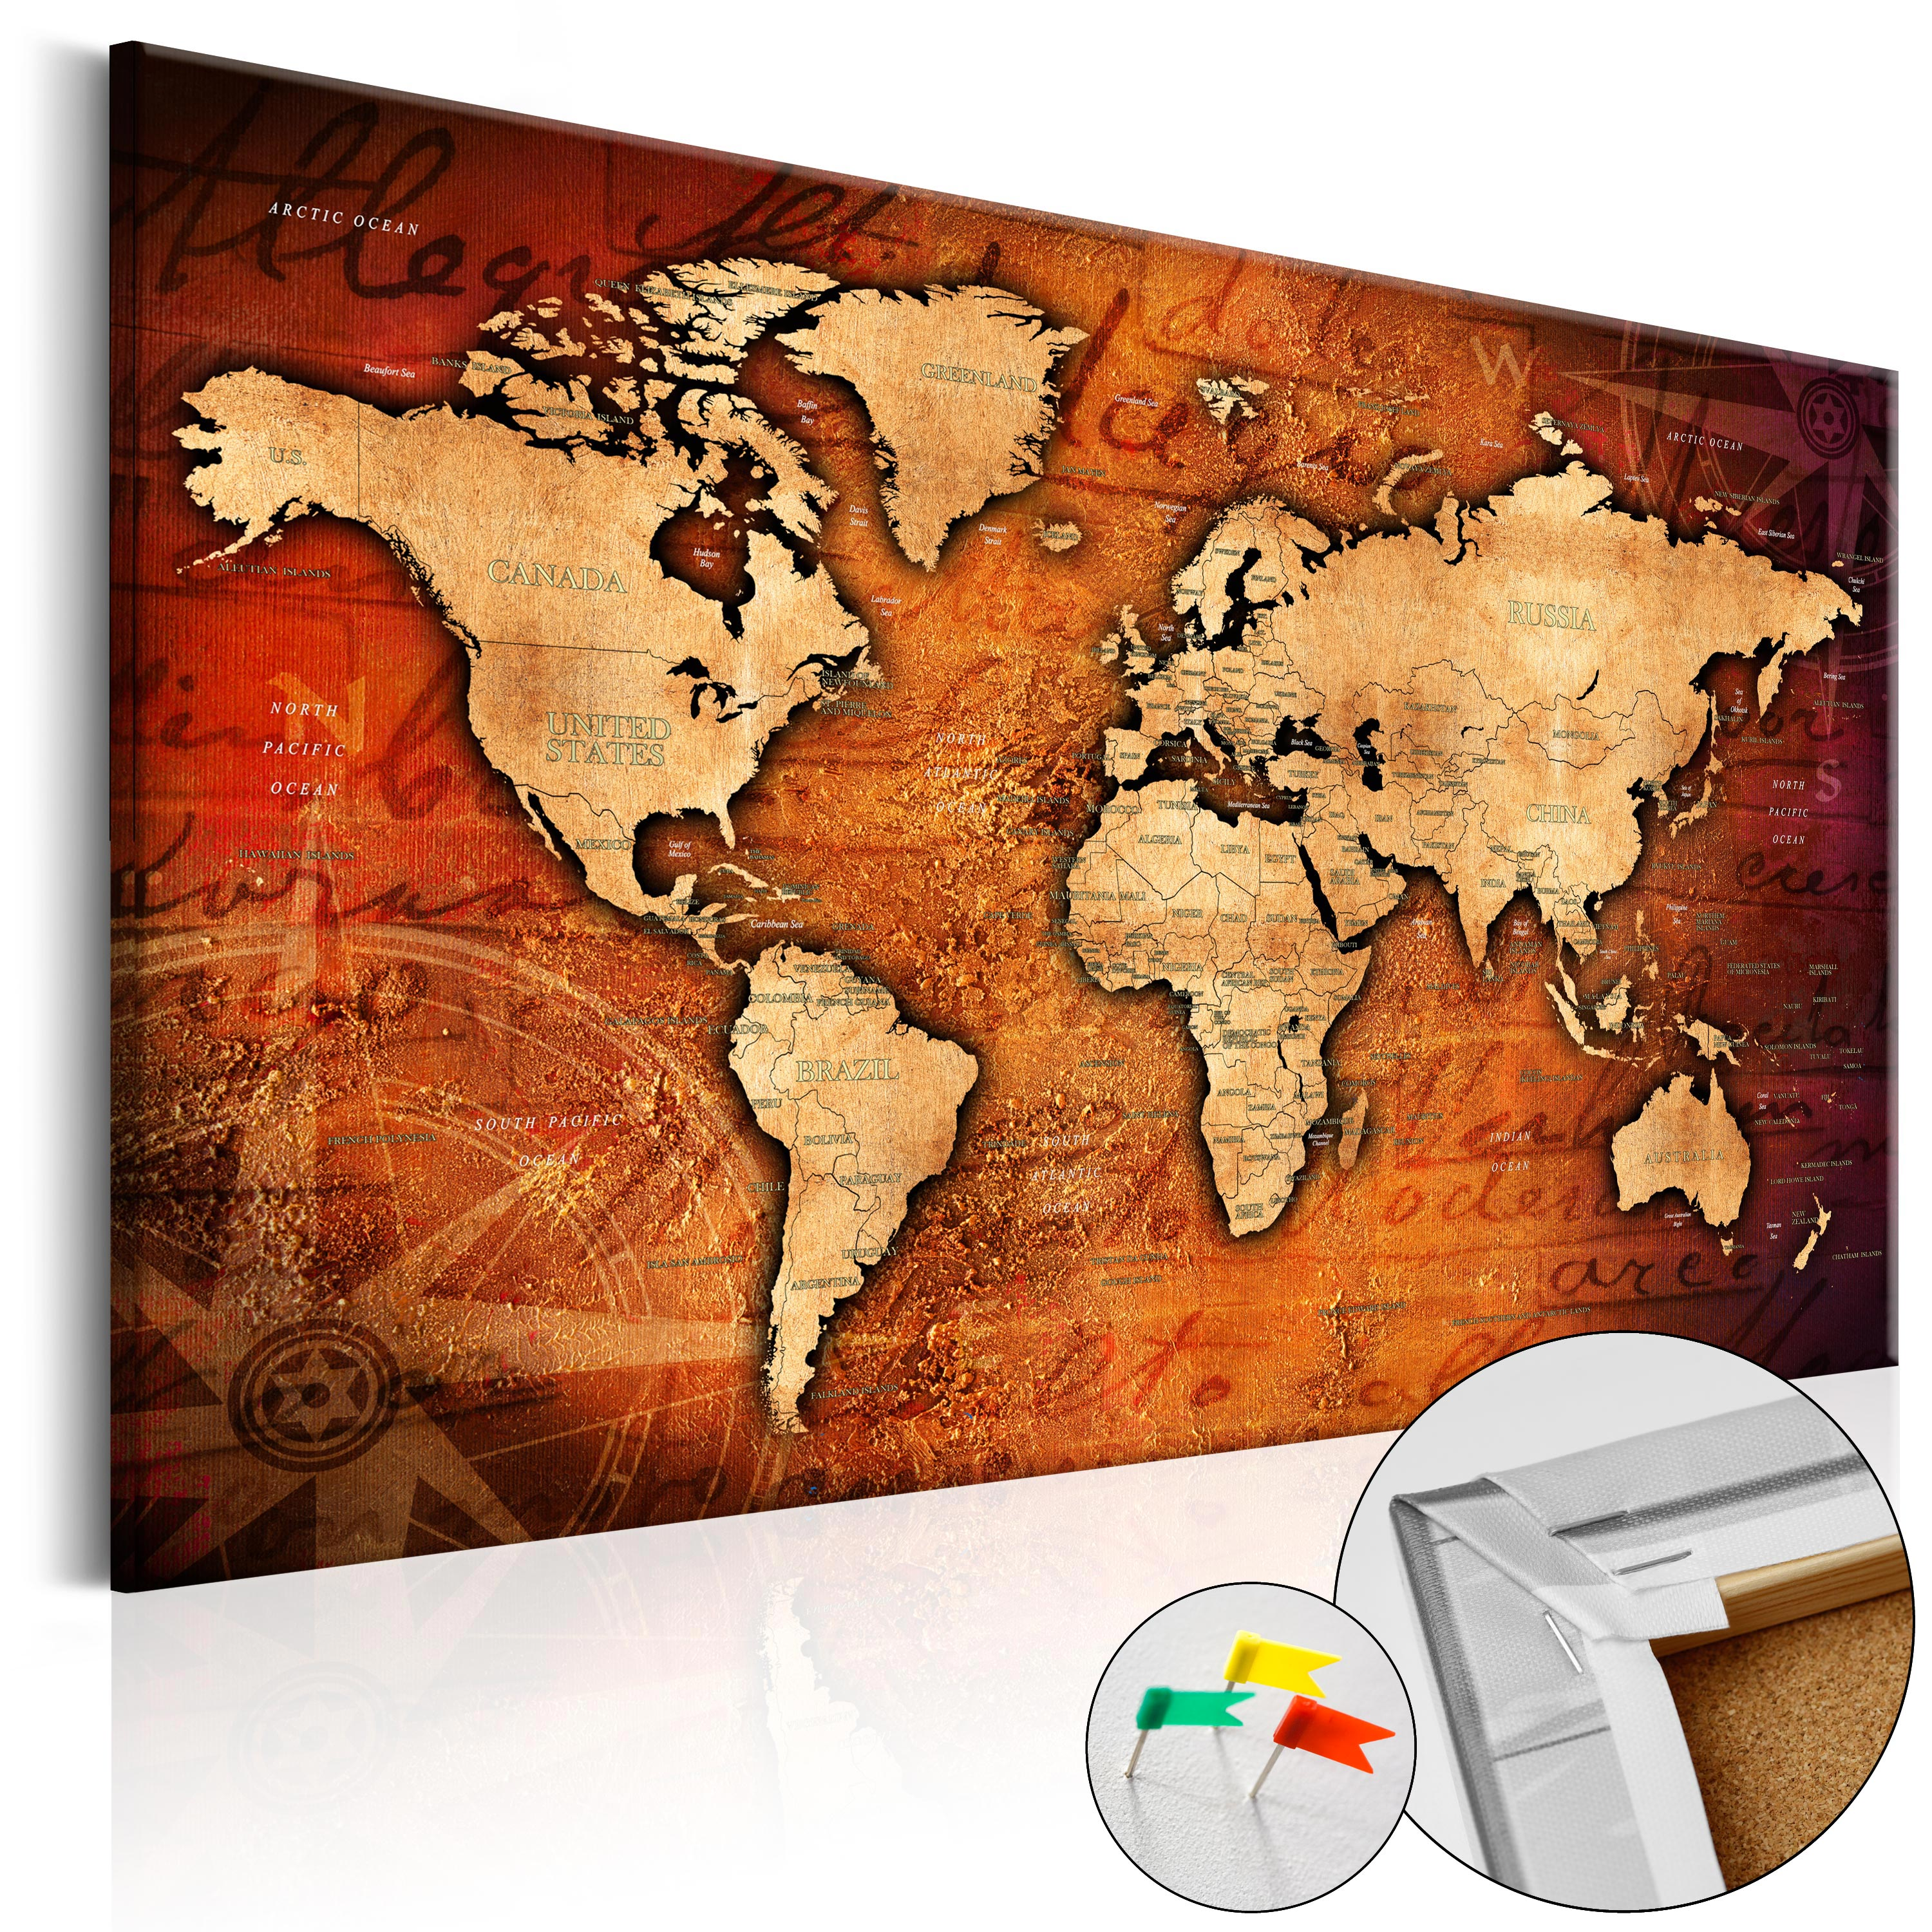 Pinboard image printed on canvas with cork backing pin board map pinboard image printed on canvas with cork backing gumiabroncs Image collections